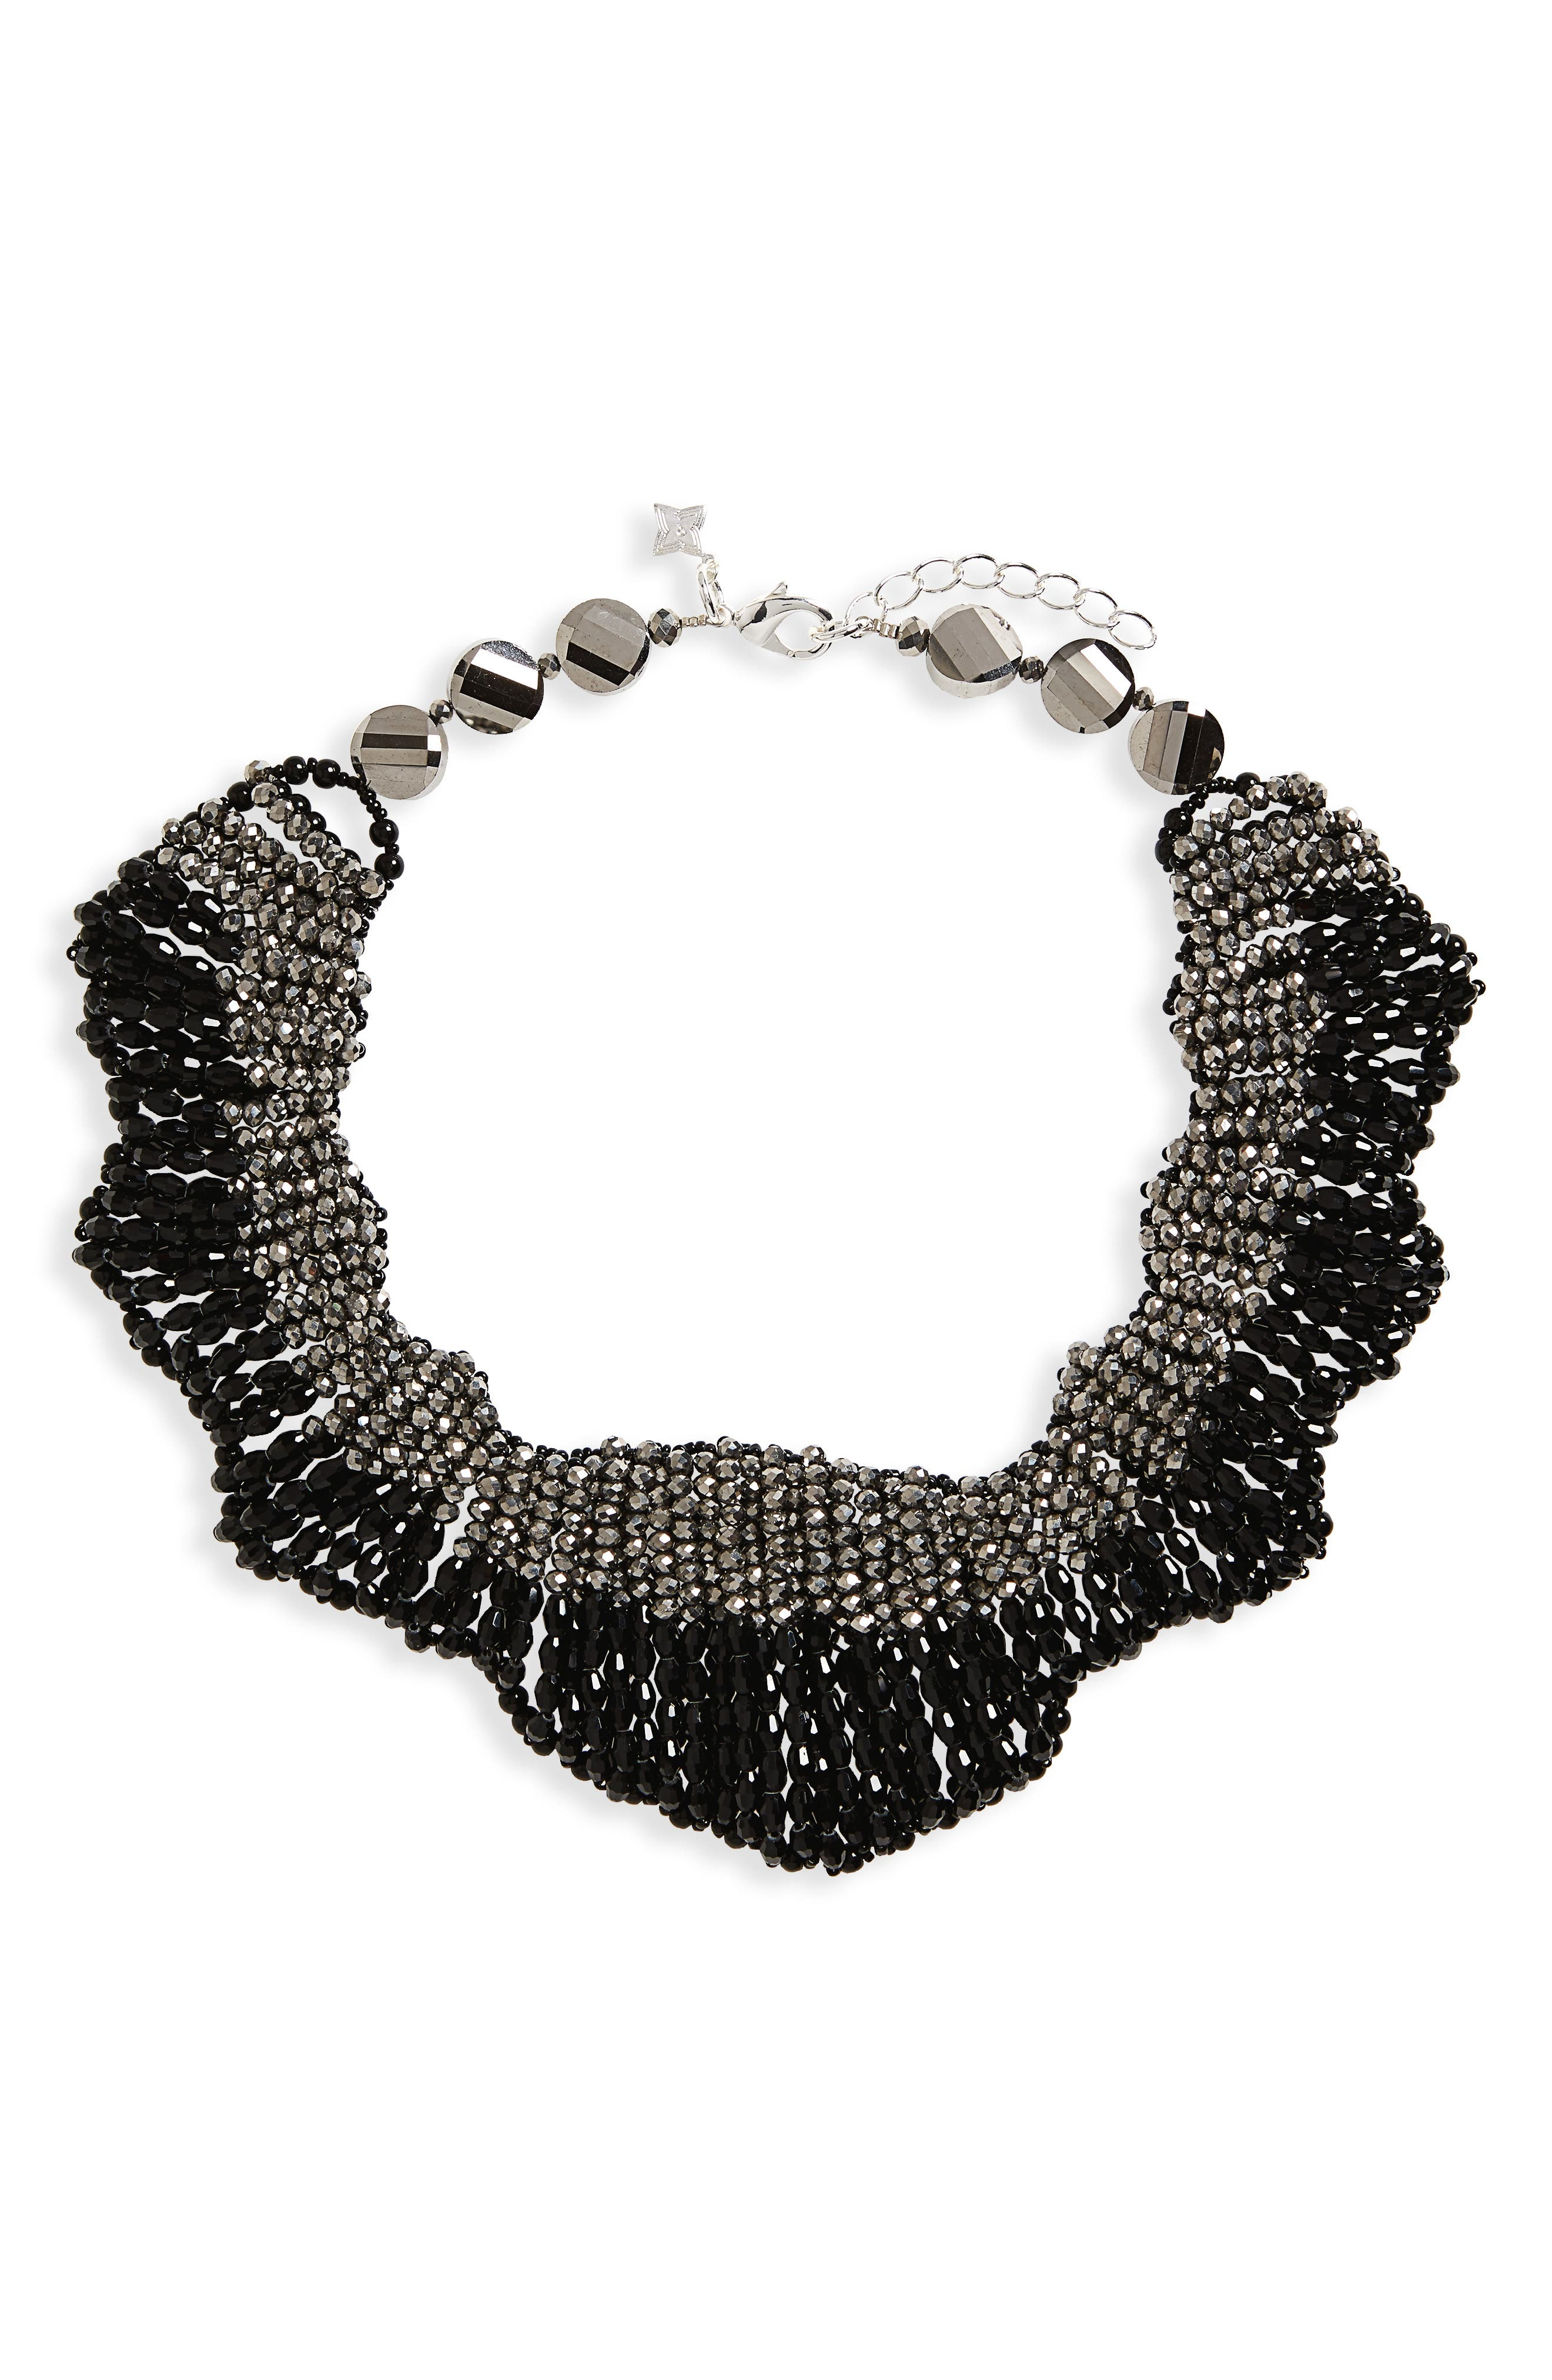 Beaded Statement Collar Necklace,                             Main thumbnail 1, color,                             001